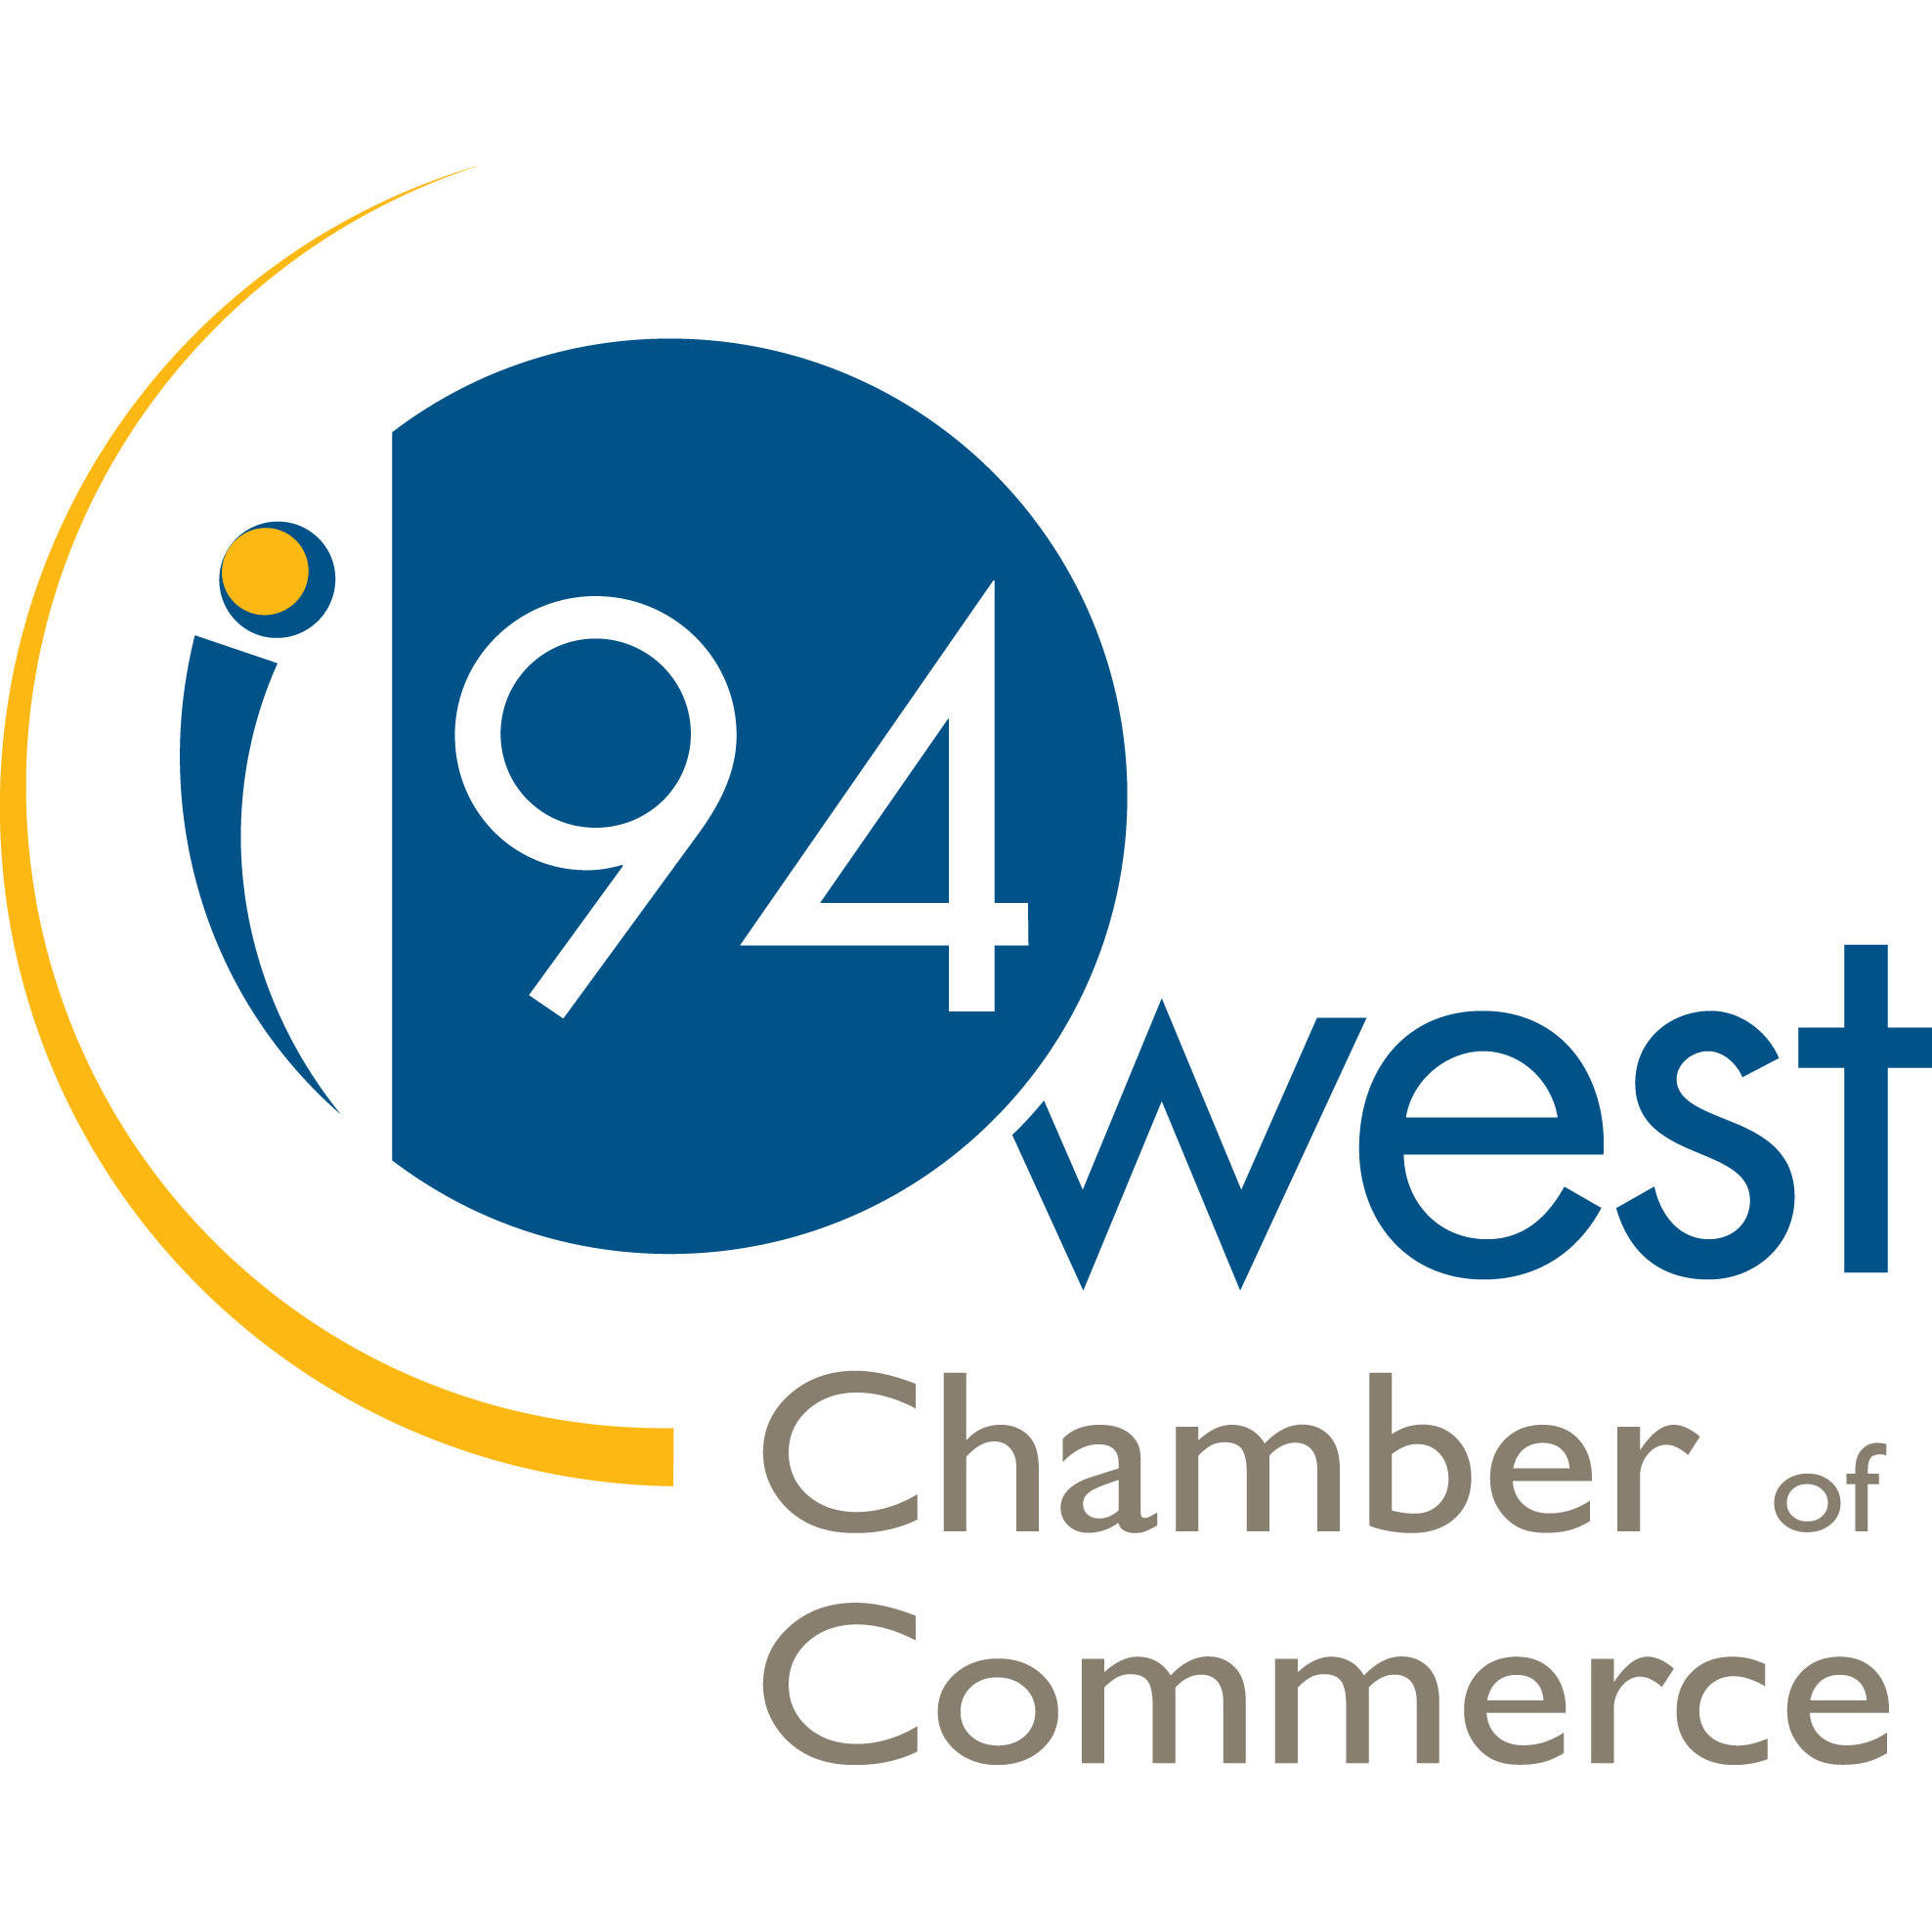 I-94 West Chamber of Commerce image 5